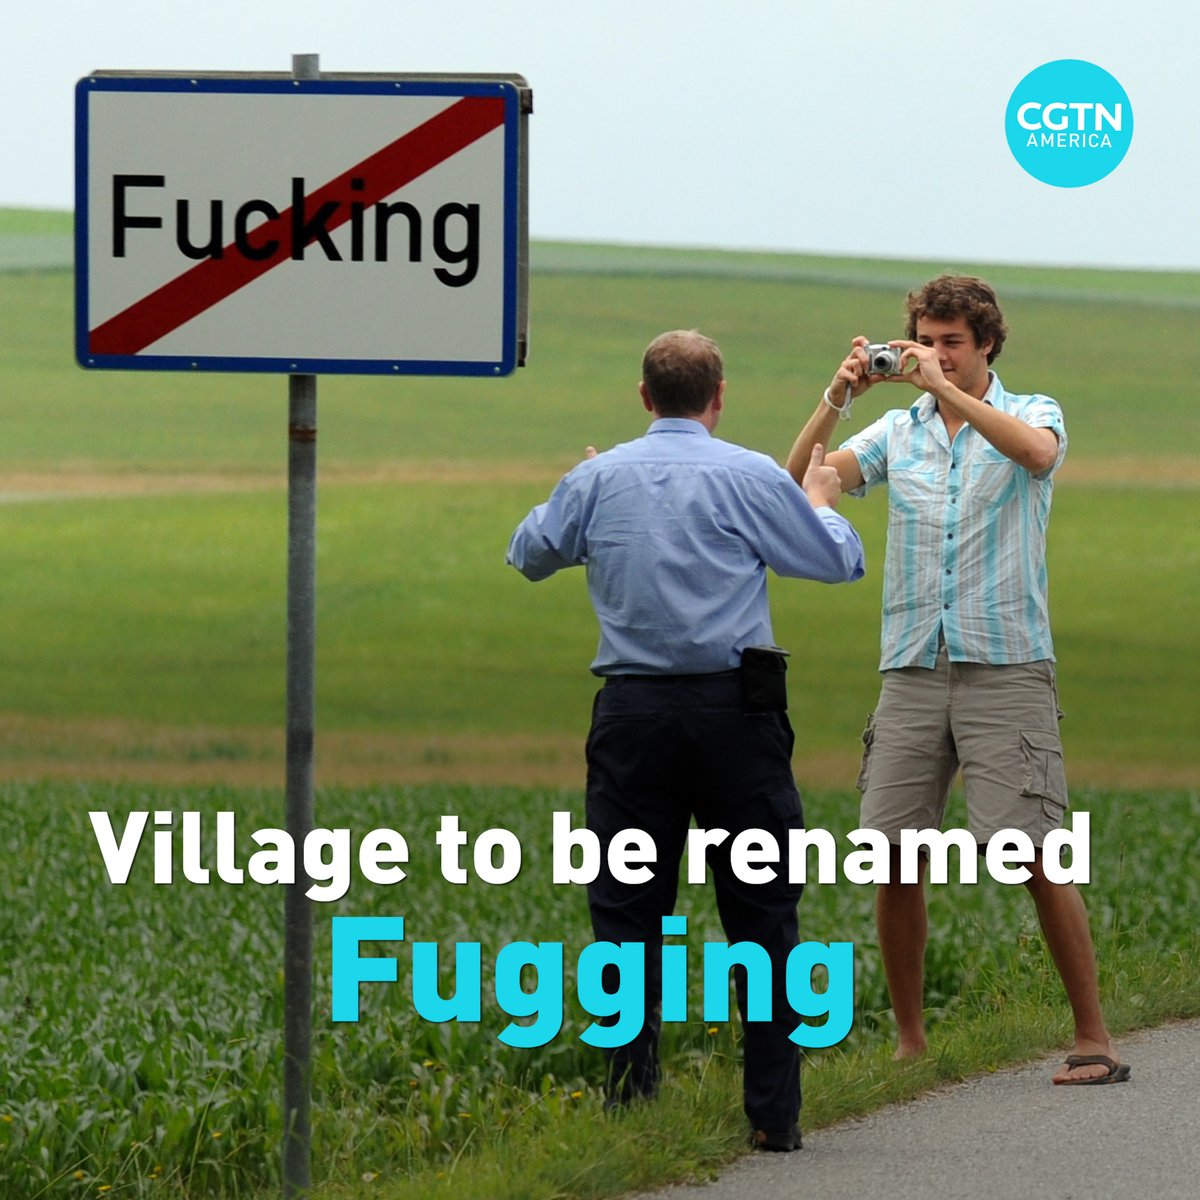 "An Austrian village near the German boarder finally changed its name after years of mockery. The council of Tarsdorf voted to change village's name from ""Fucking"" to ""Fugging"", effective on January 1, 2021."